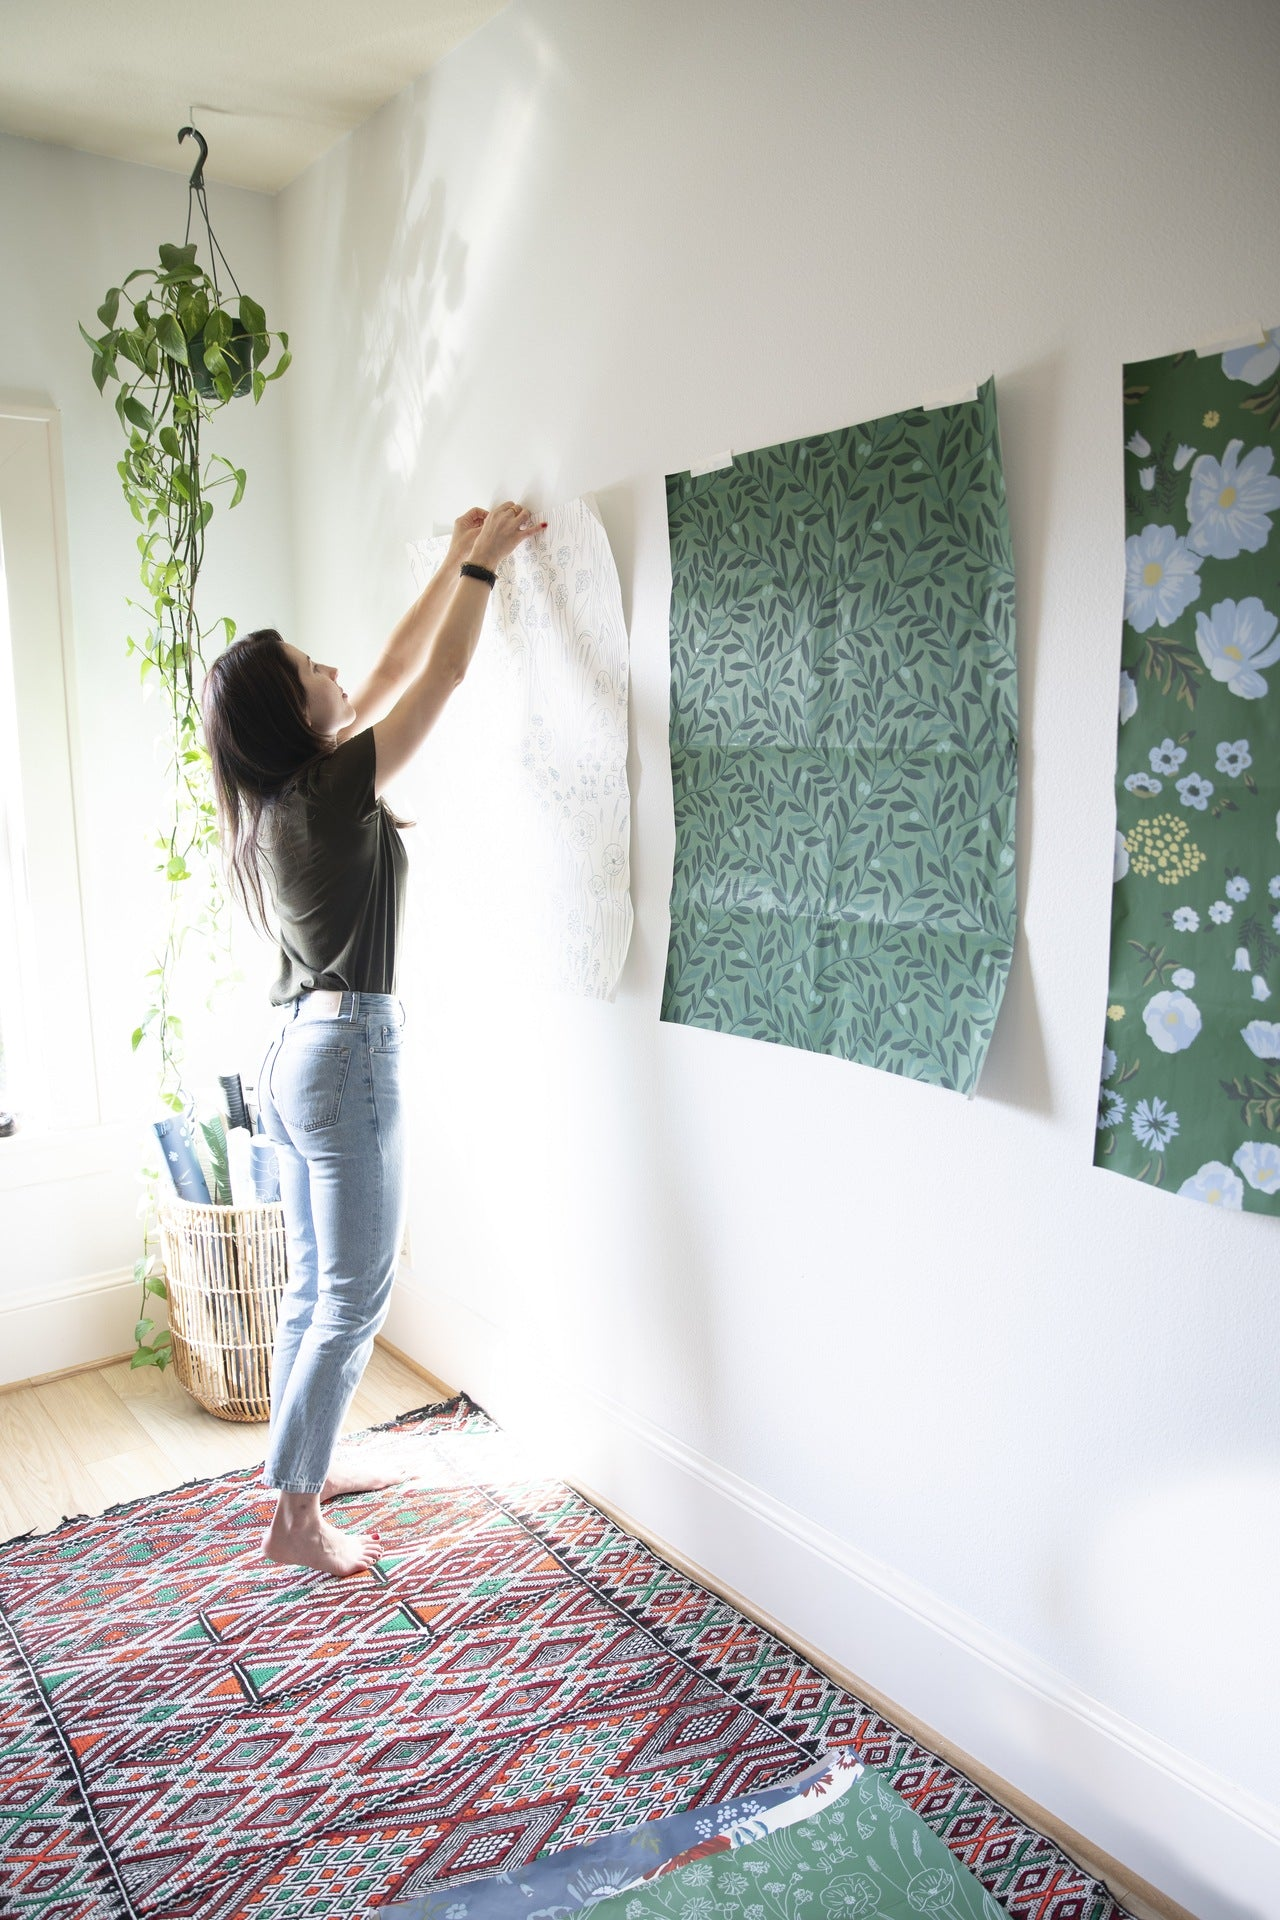 Ola Supernat works on her wallpaper designs in her Portland studio   Meet the designers behind the new Schoolhouse + Hygge & West wallpaper collection